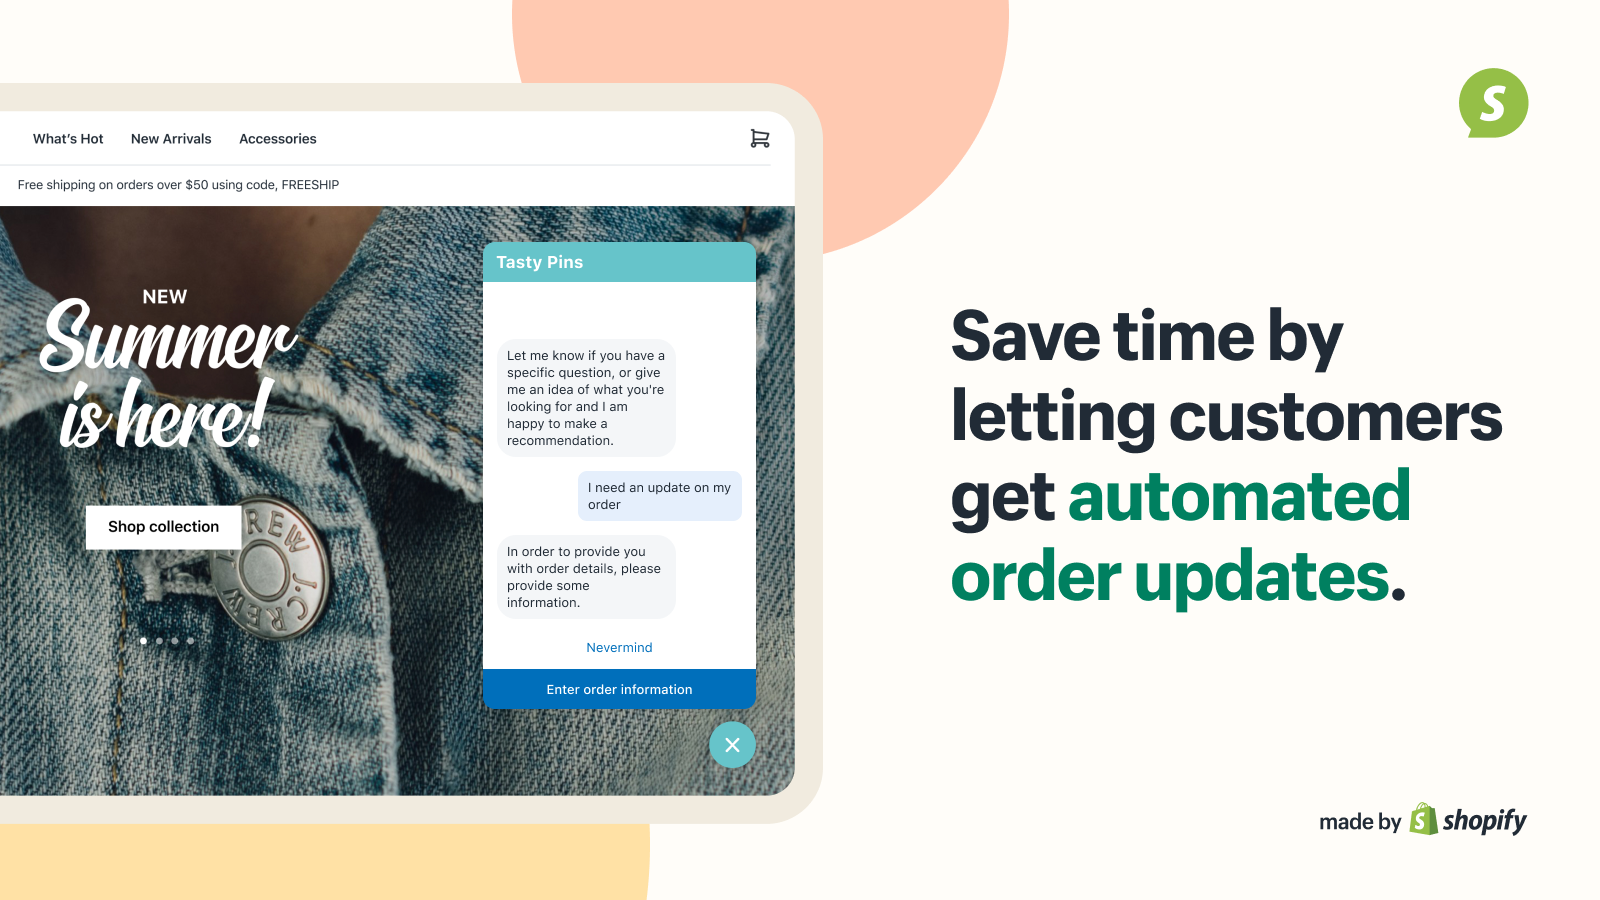 Save time by letting customers get automated order updates